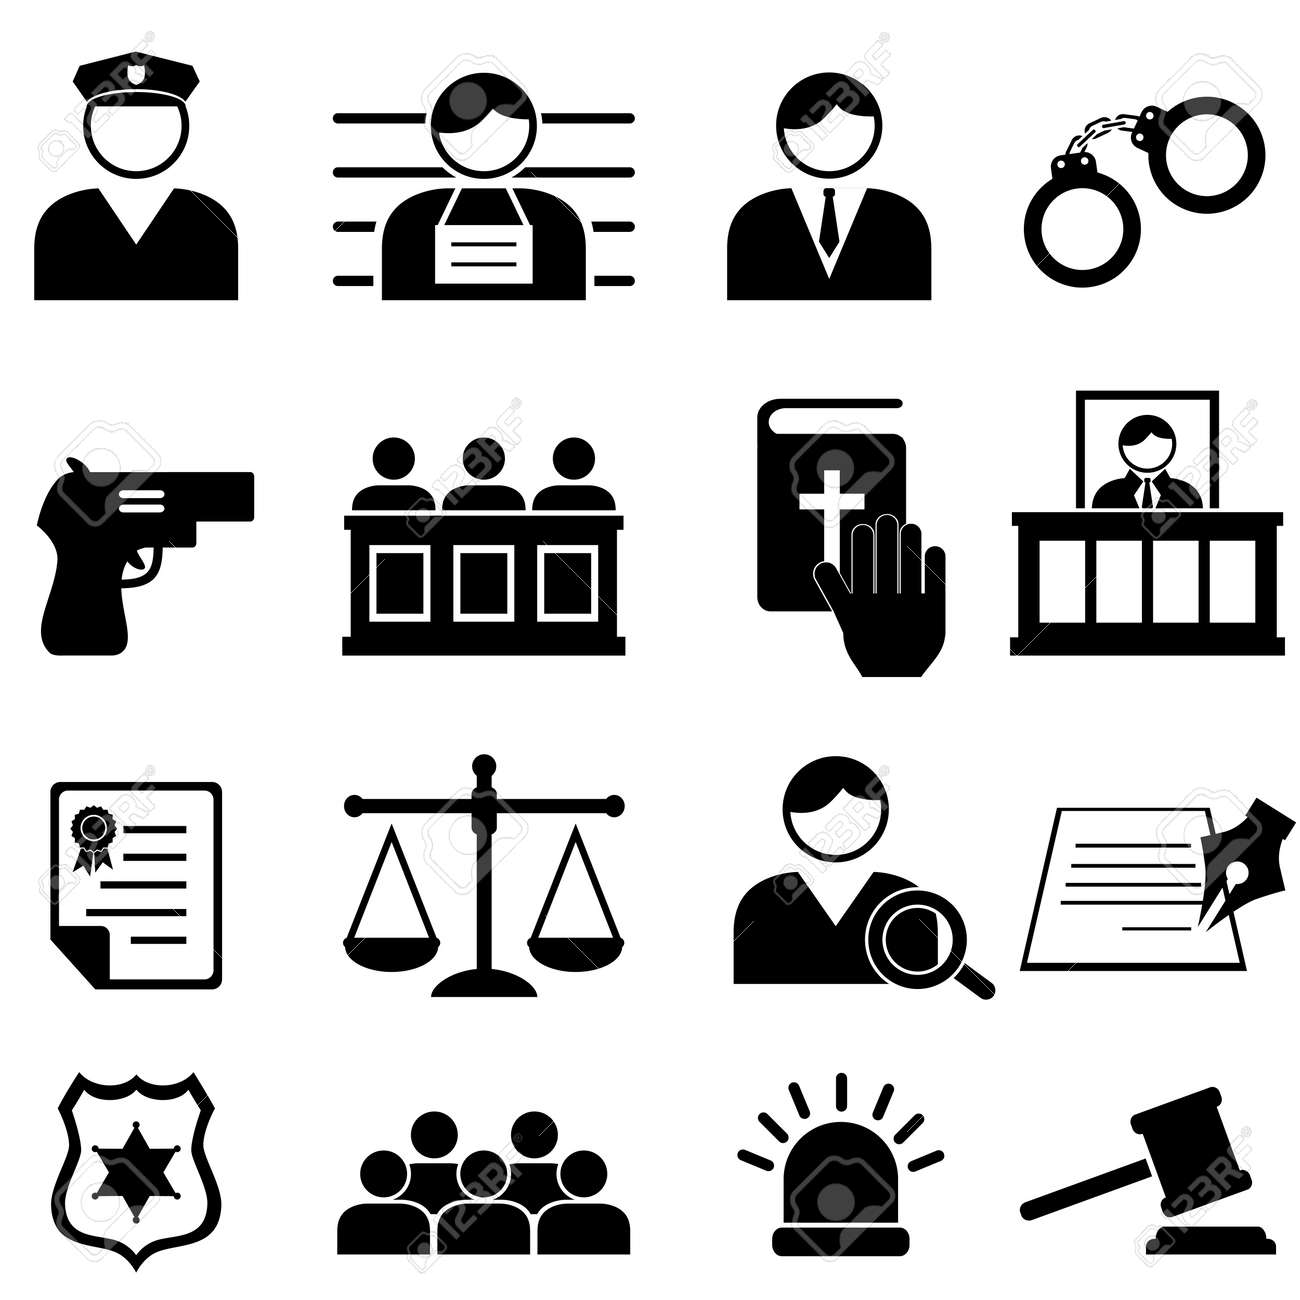 Legal, justice and court icon set - 23298088